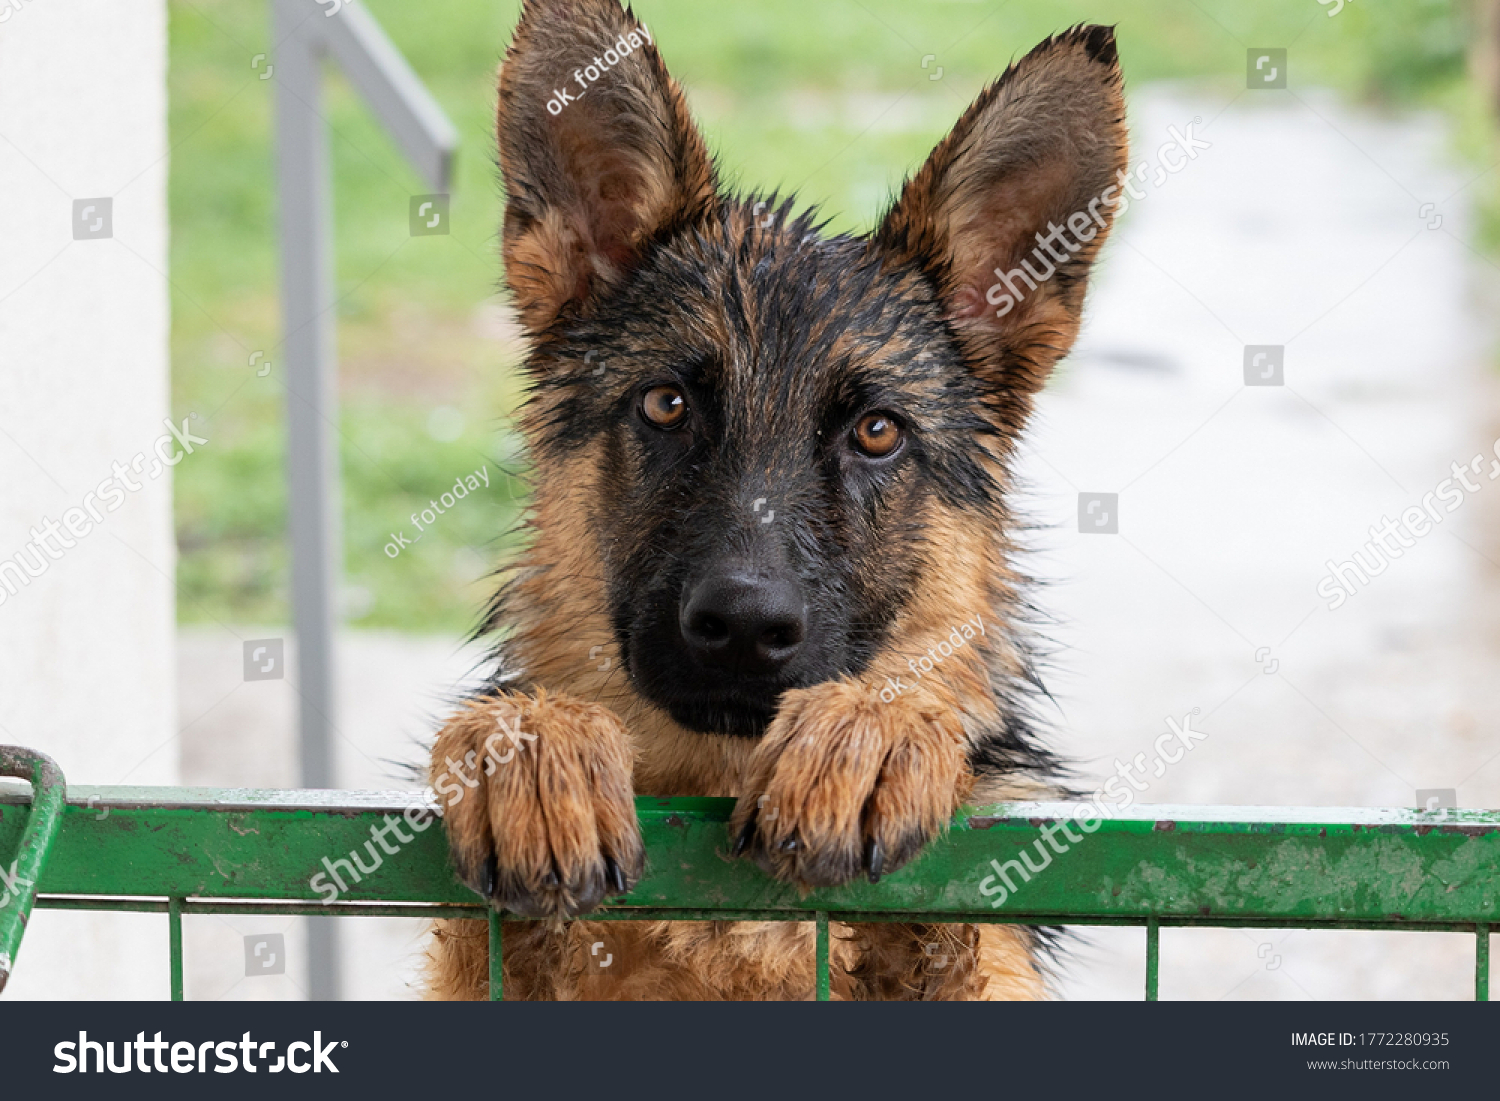 stock-photo-a-young-german-shepherd-dog-